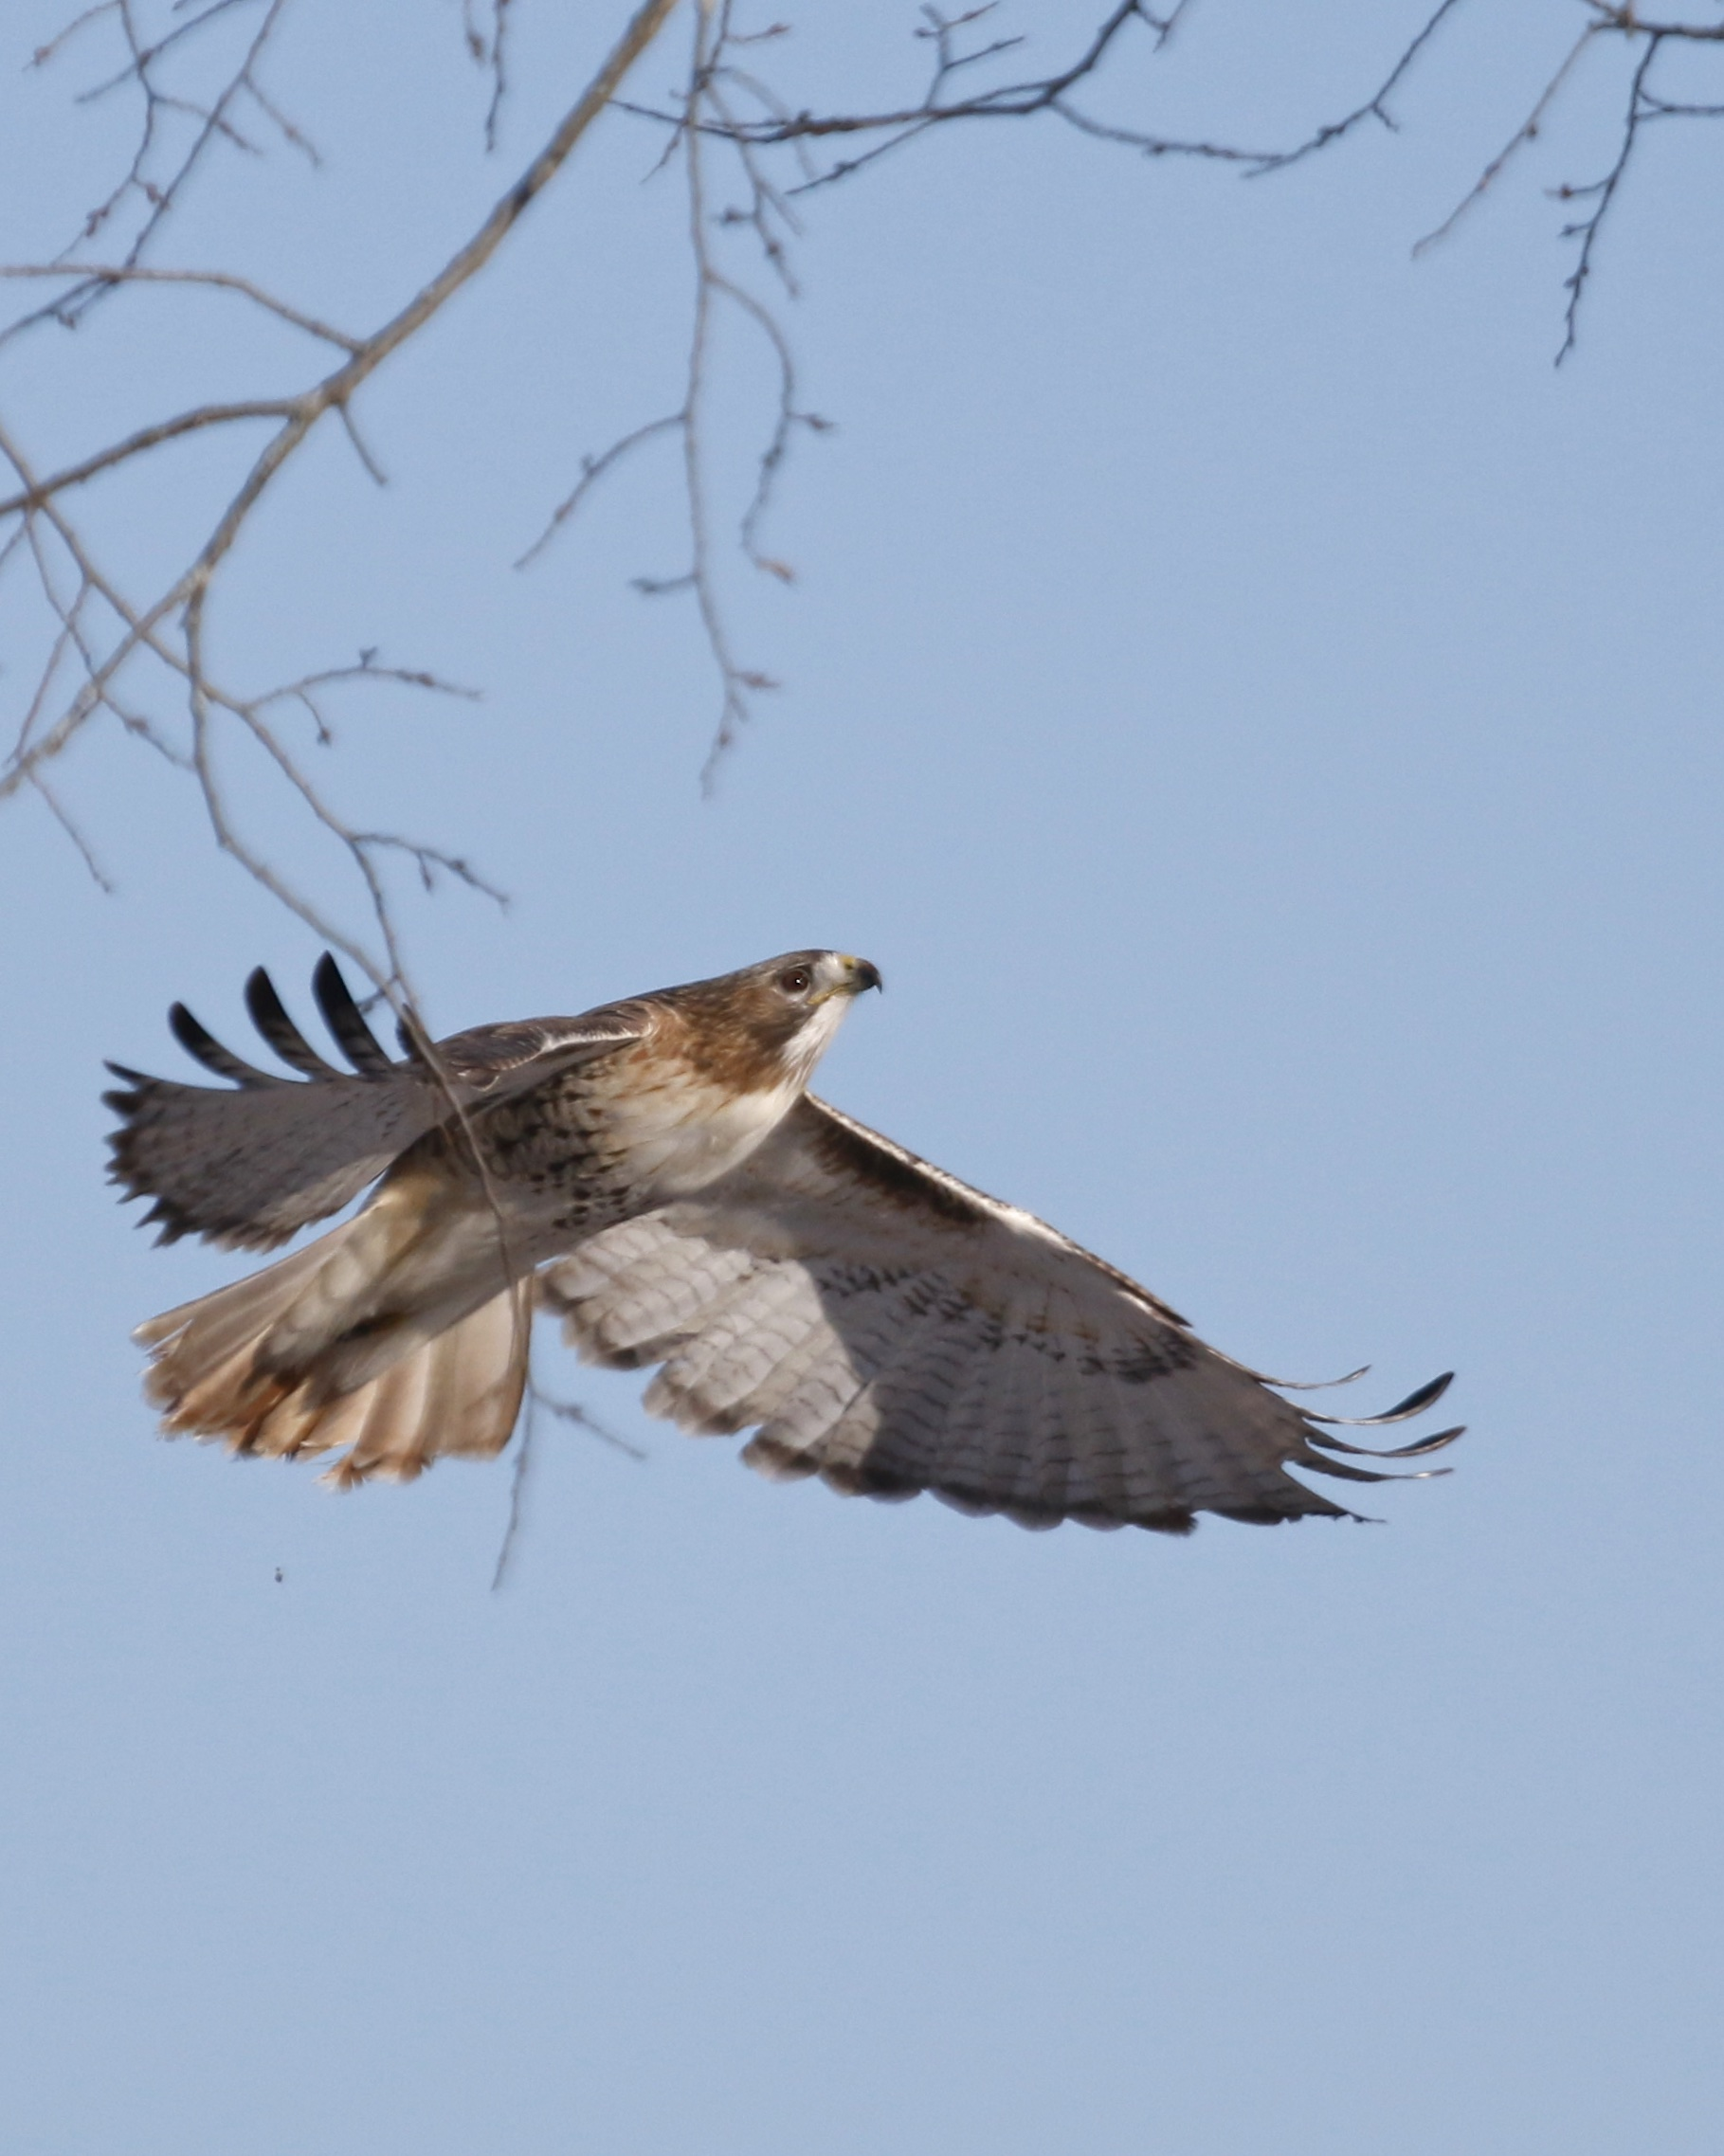 ~I was sitting in the blind thinking that it would be nice if a Red-tailed Hawk would fly towards me rather than away. Moments later this bird flew in. Red-tailed Hawk at Shawankgunk Grasslands NWR, 1/17/15.~